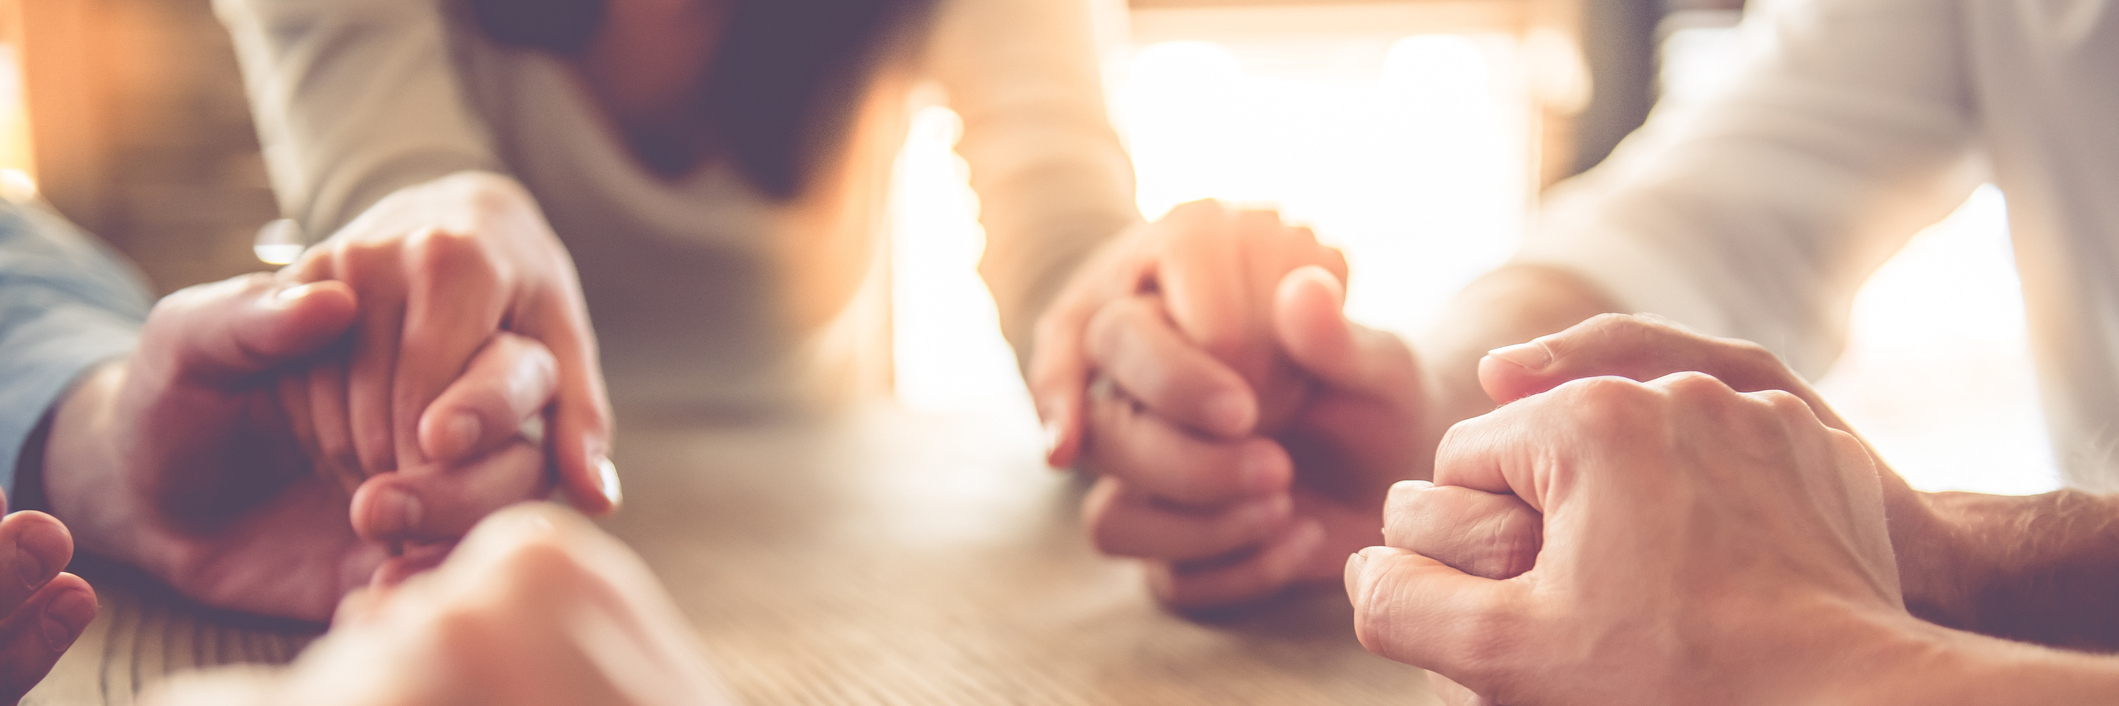 close up image of business team holding hands together on wooden table in warm light